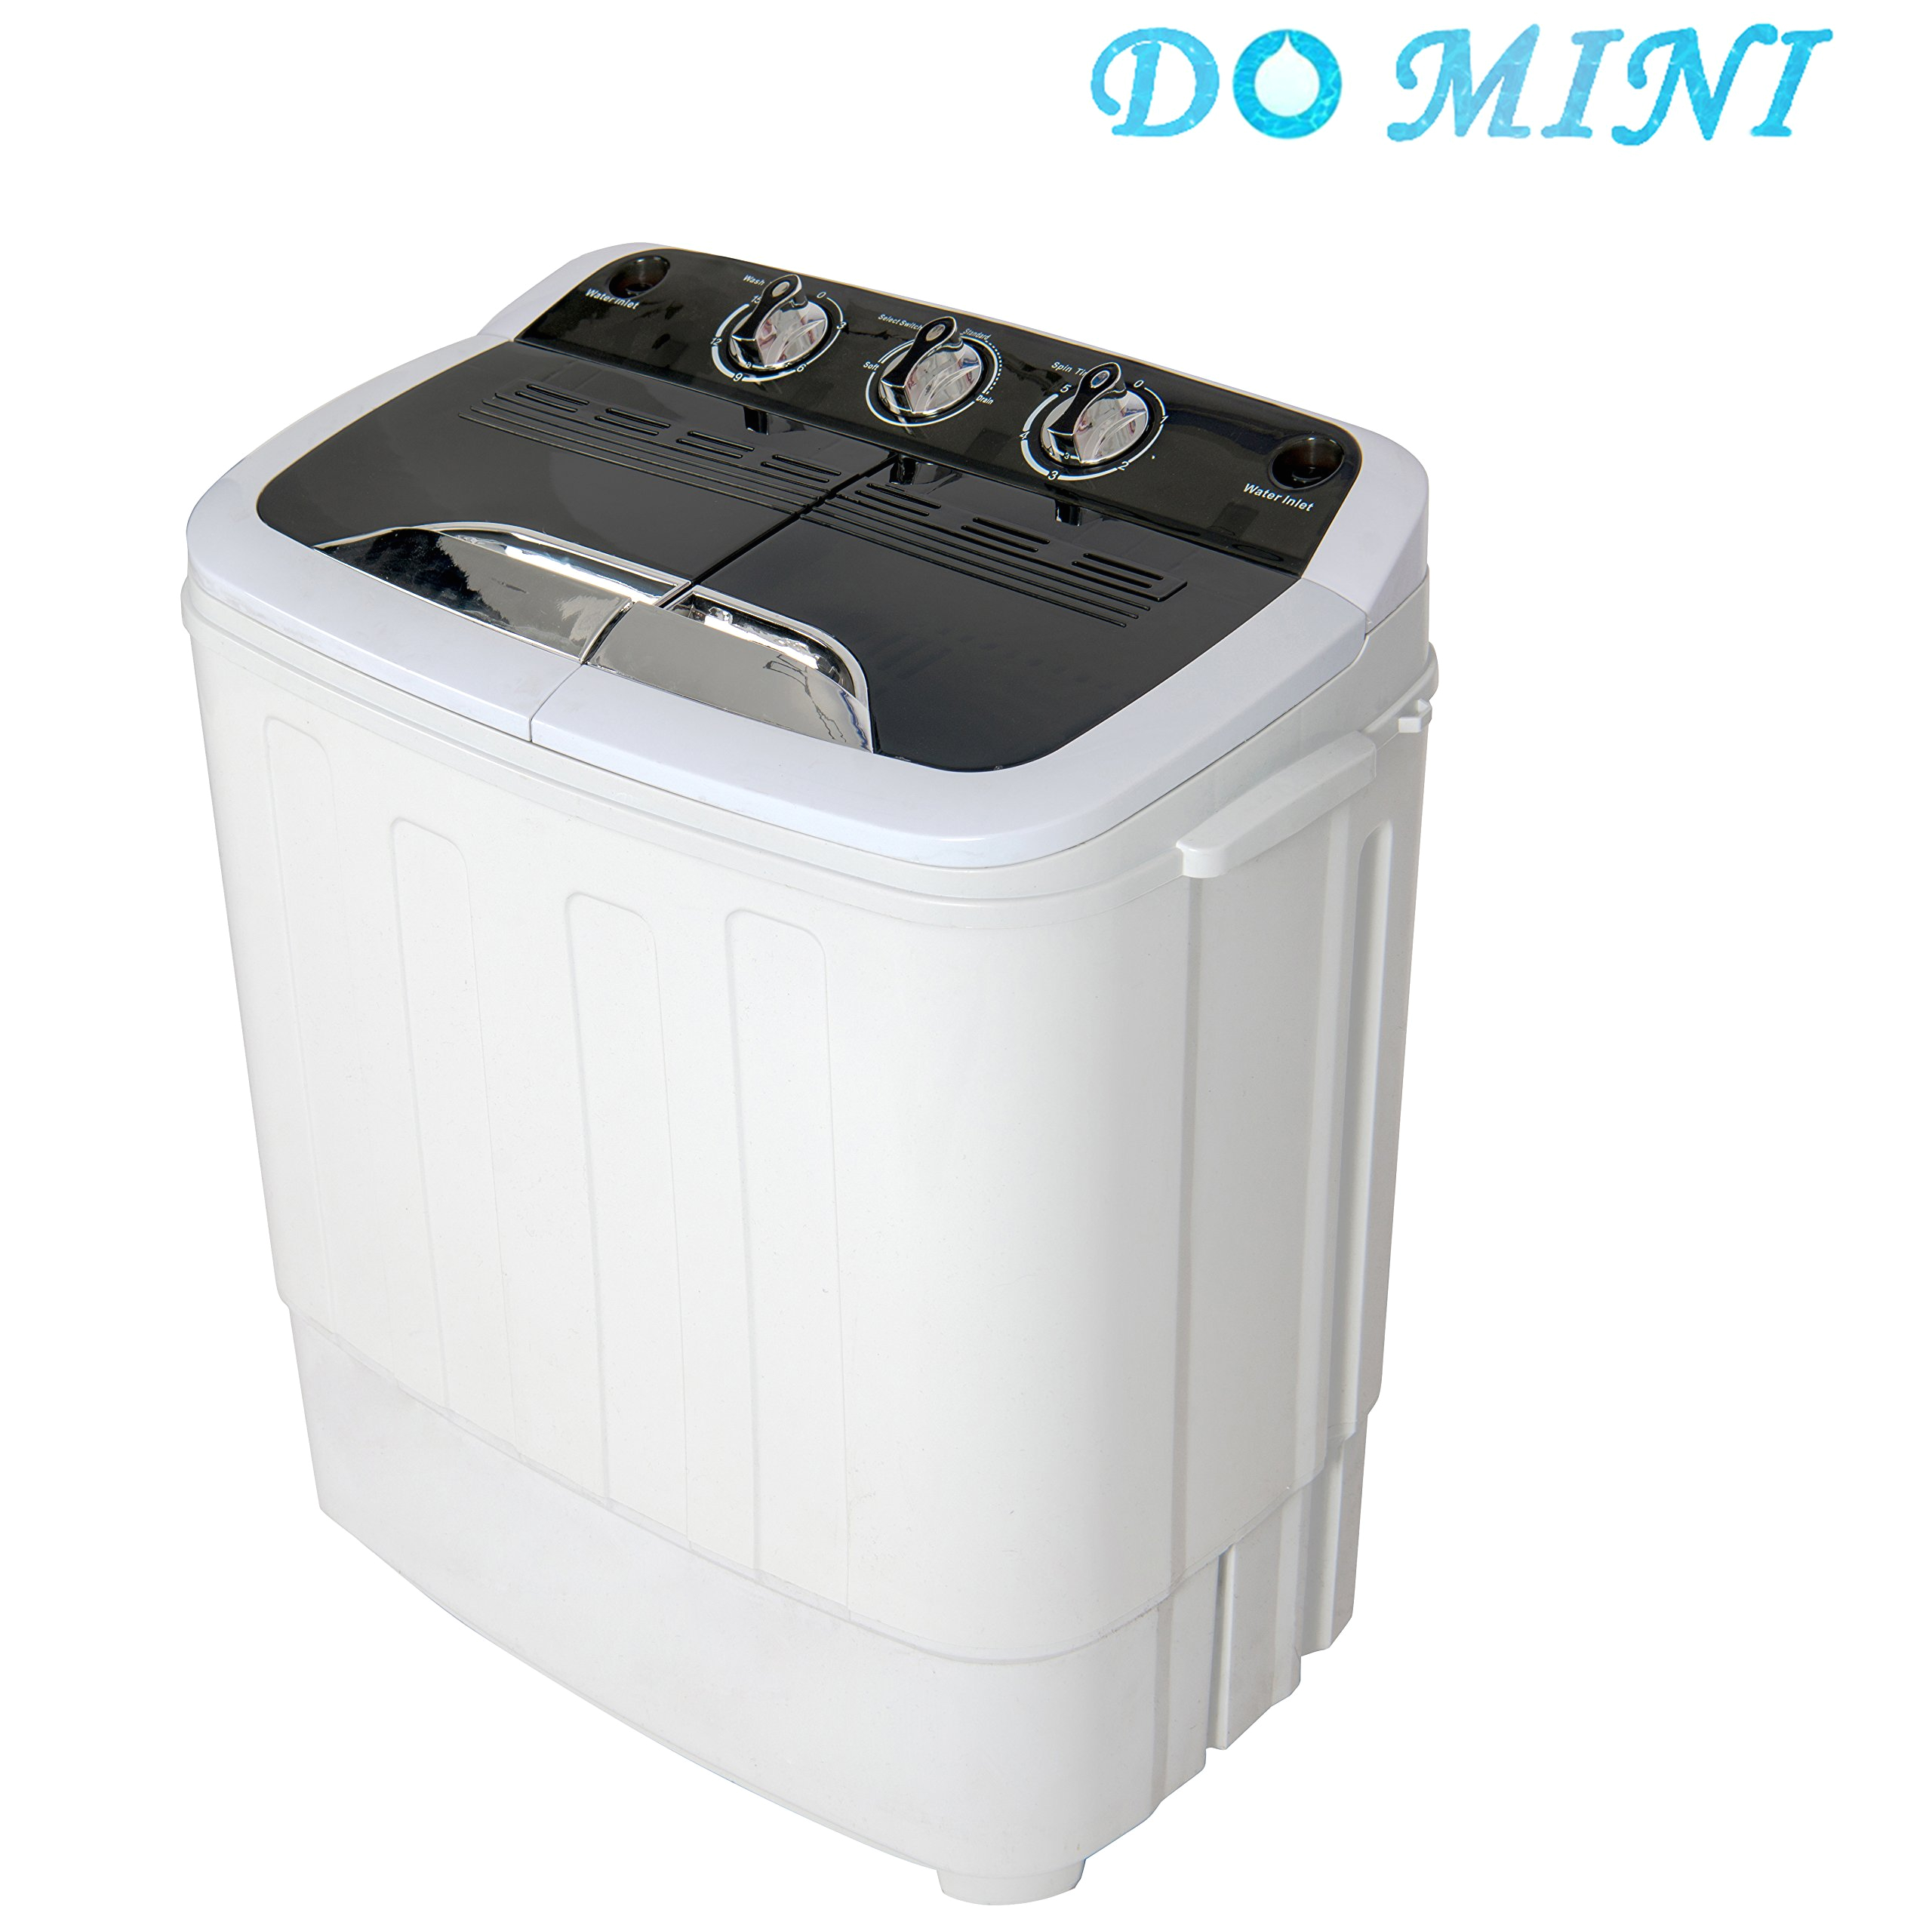 Portable Mini Bathtub Do Mini Portable Pact Twin Tub 12 3ibs Capacity Washing